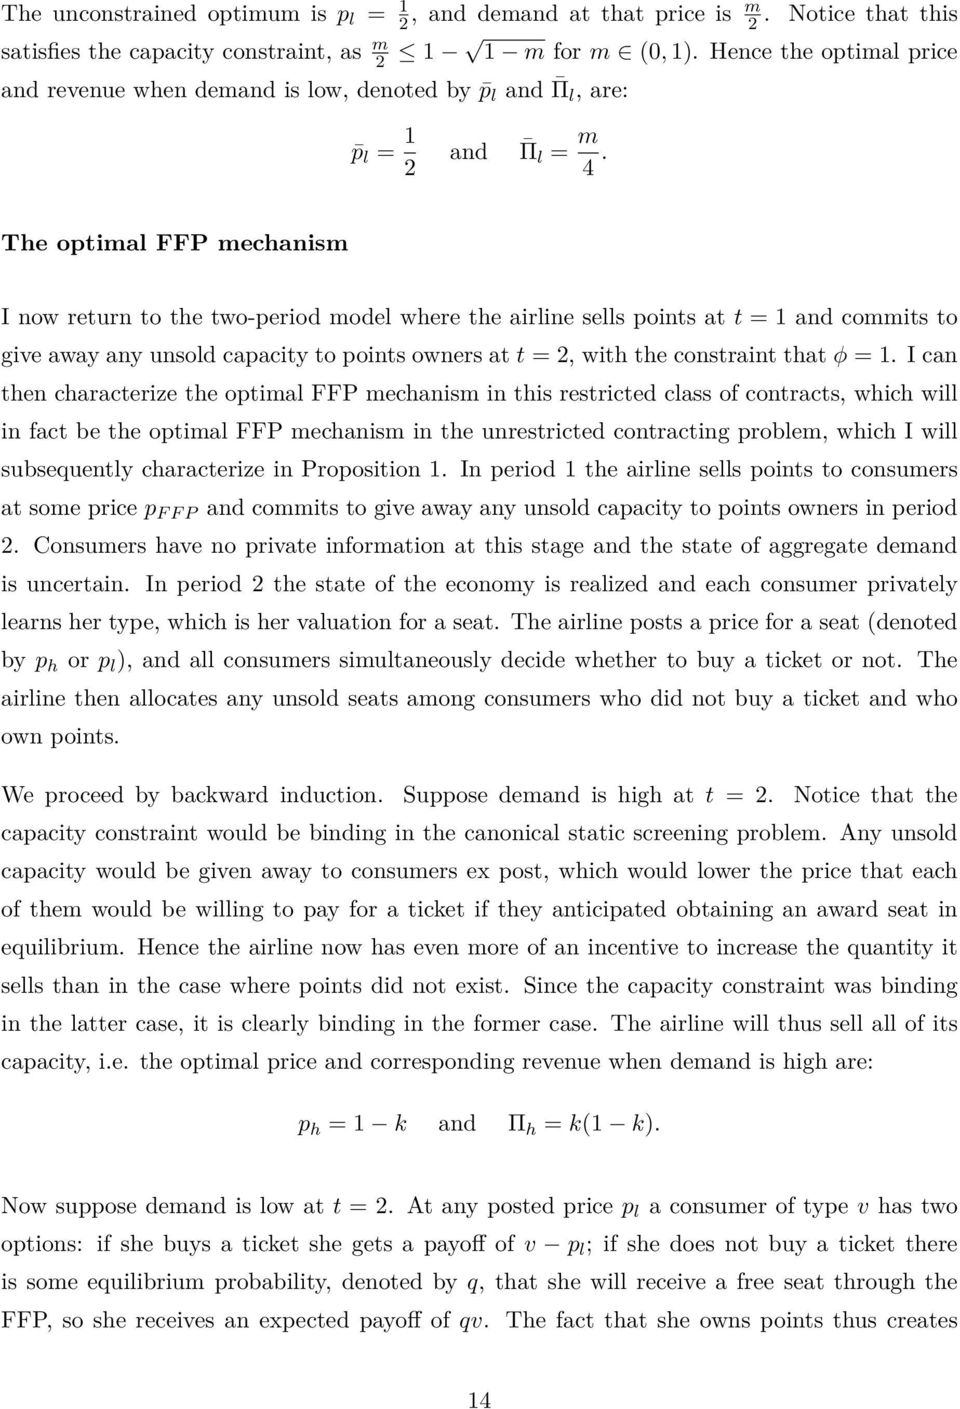 The optimal FFP mechanism I now return to the two-period model where the airline sells points at t = 1 and commits to give away any unsold capacity to points owners at t = 2, with the constraint that